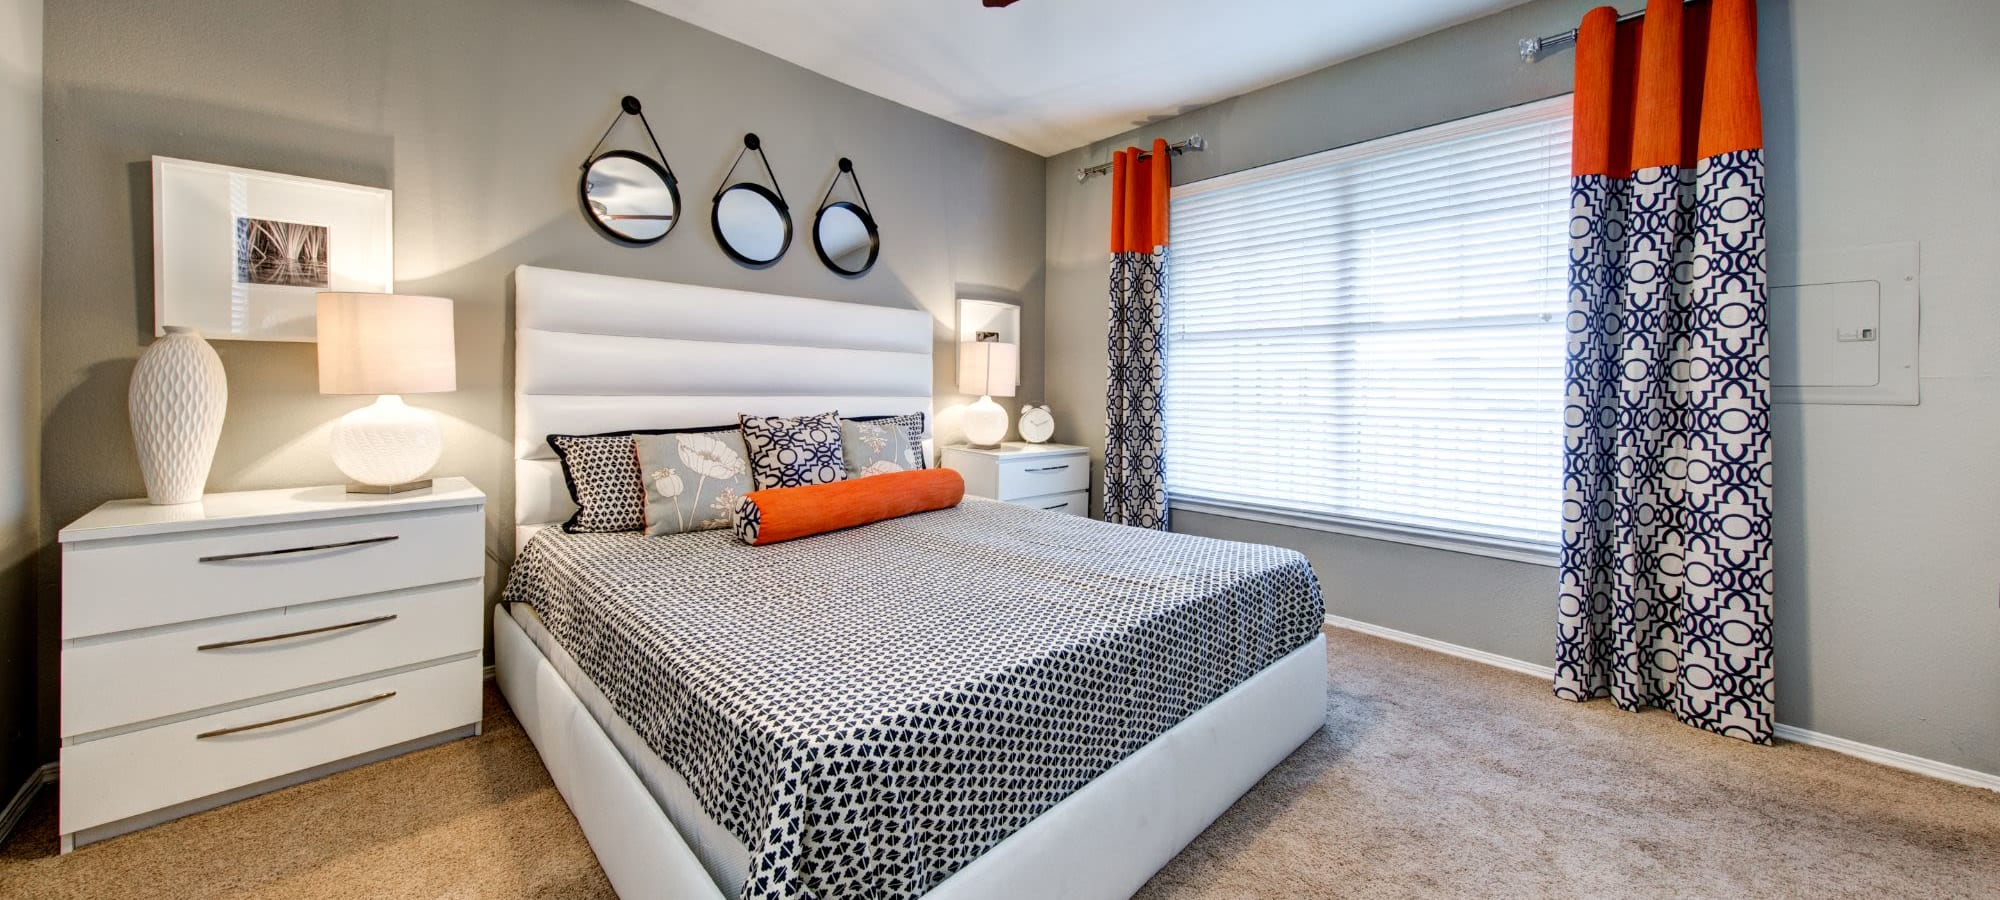 Schedule a tour of Marquis on Gaston in Dallas, Texas